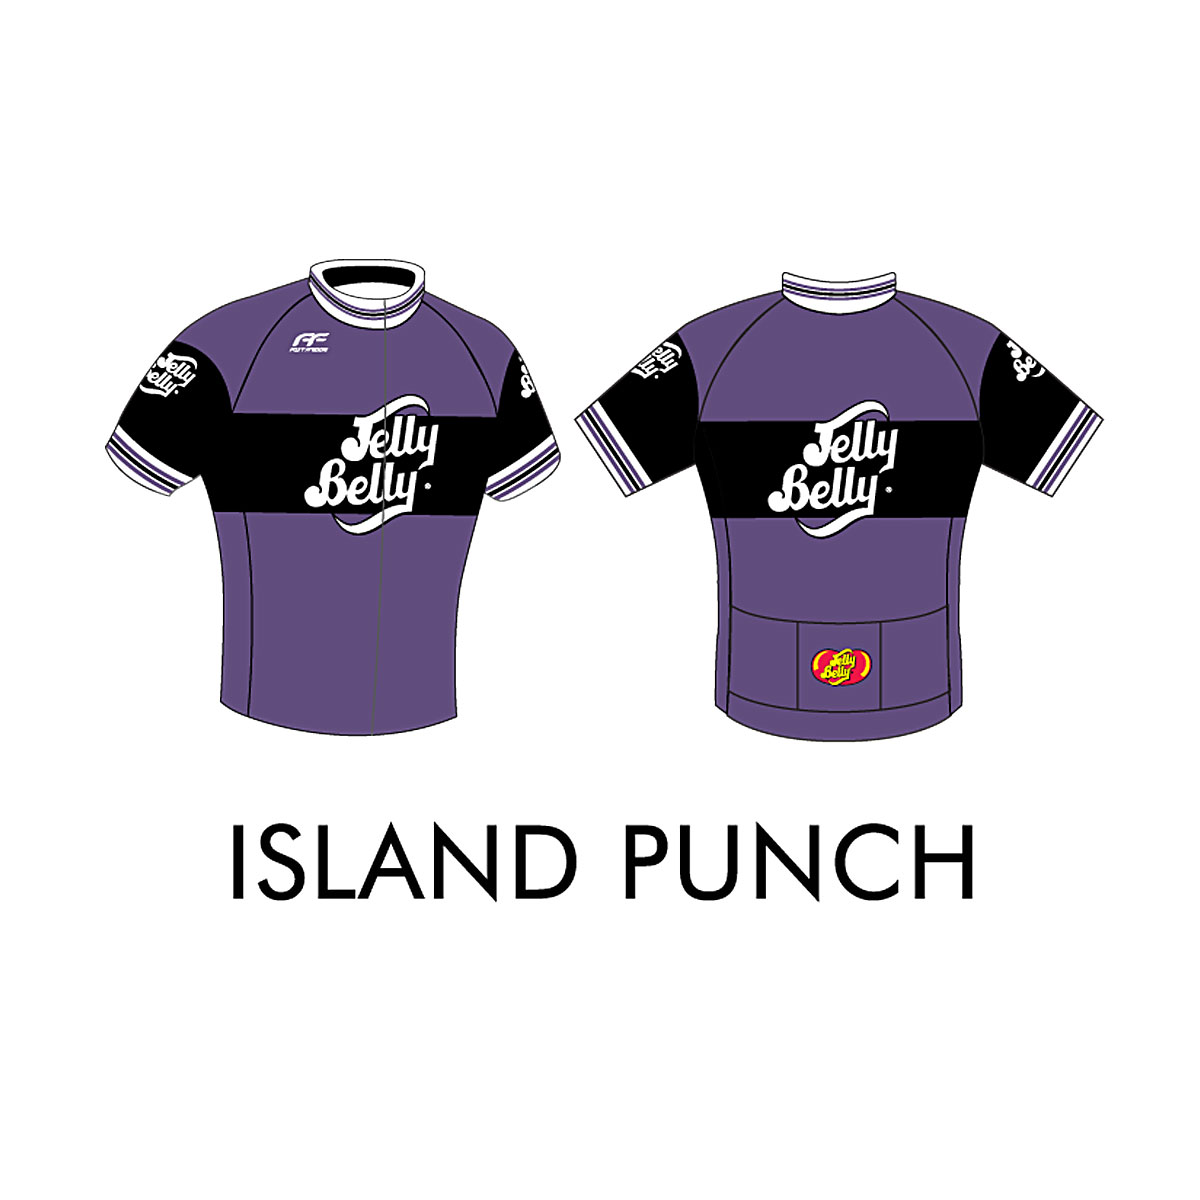 Jelly Belly Island Punch Retro Cycling Jersey - Adult - Small